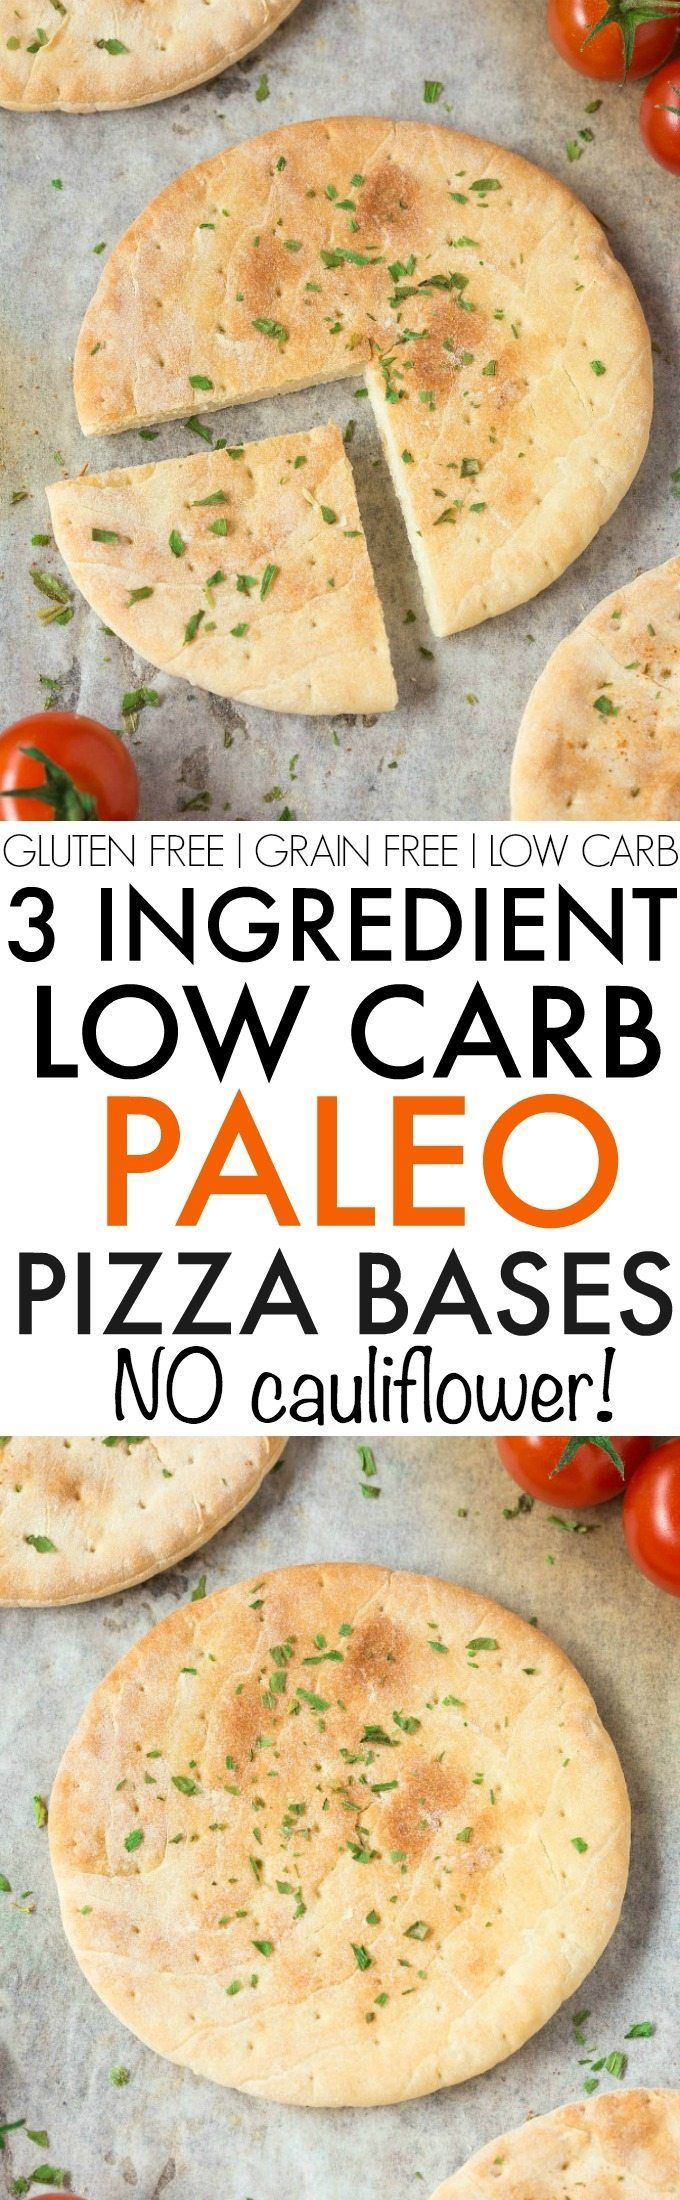 3 Ingredient Paleo Pizza Bases and Crusts- Quick, easy low carb and low calorie, NO Cauliflower and NO oven needed- They are made stovetop and freezer friendly! {grain free, paleo, gluten free}- thebigmansworld.com